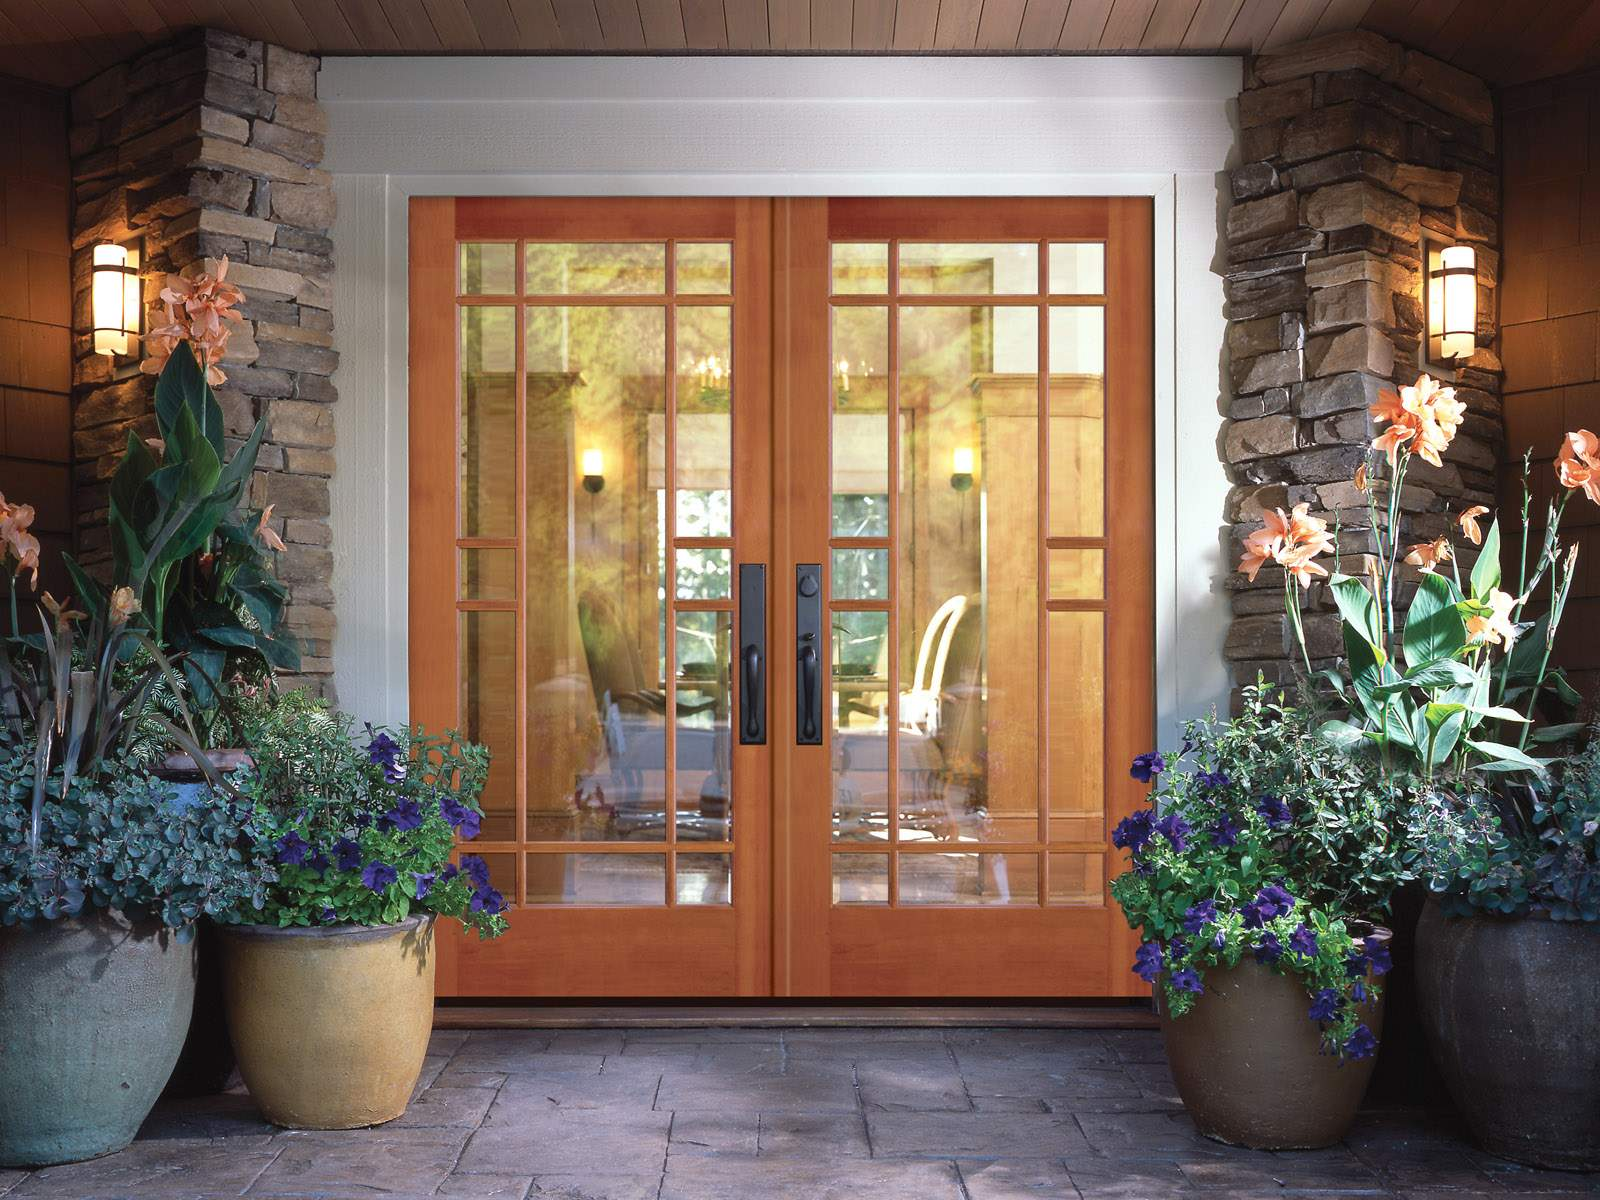 25 inspiring door design ideas for your home Front entrance ideas interior